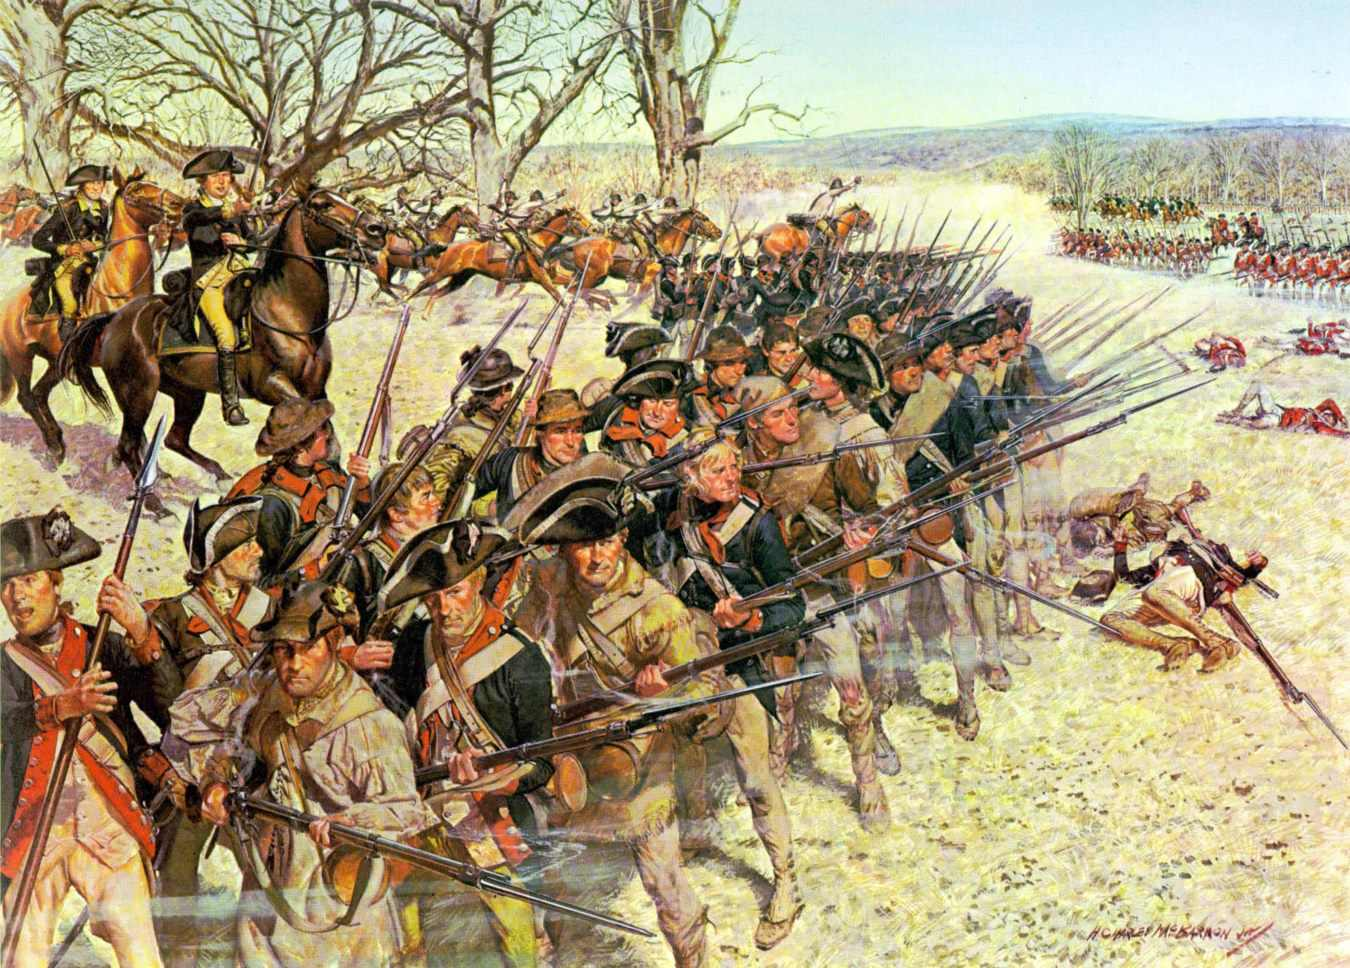 Battle of Guilford Courthouse, 15 March, 1781